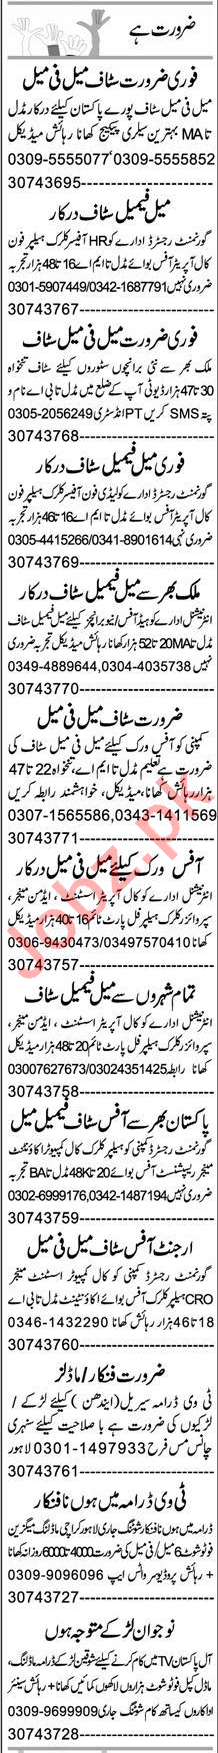 Finance Manager & Garments Manager Jobs 2020 in Lahore